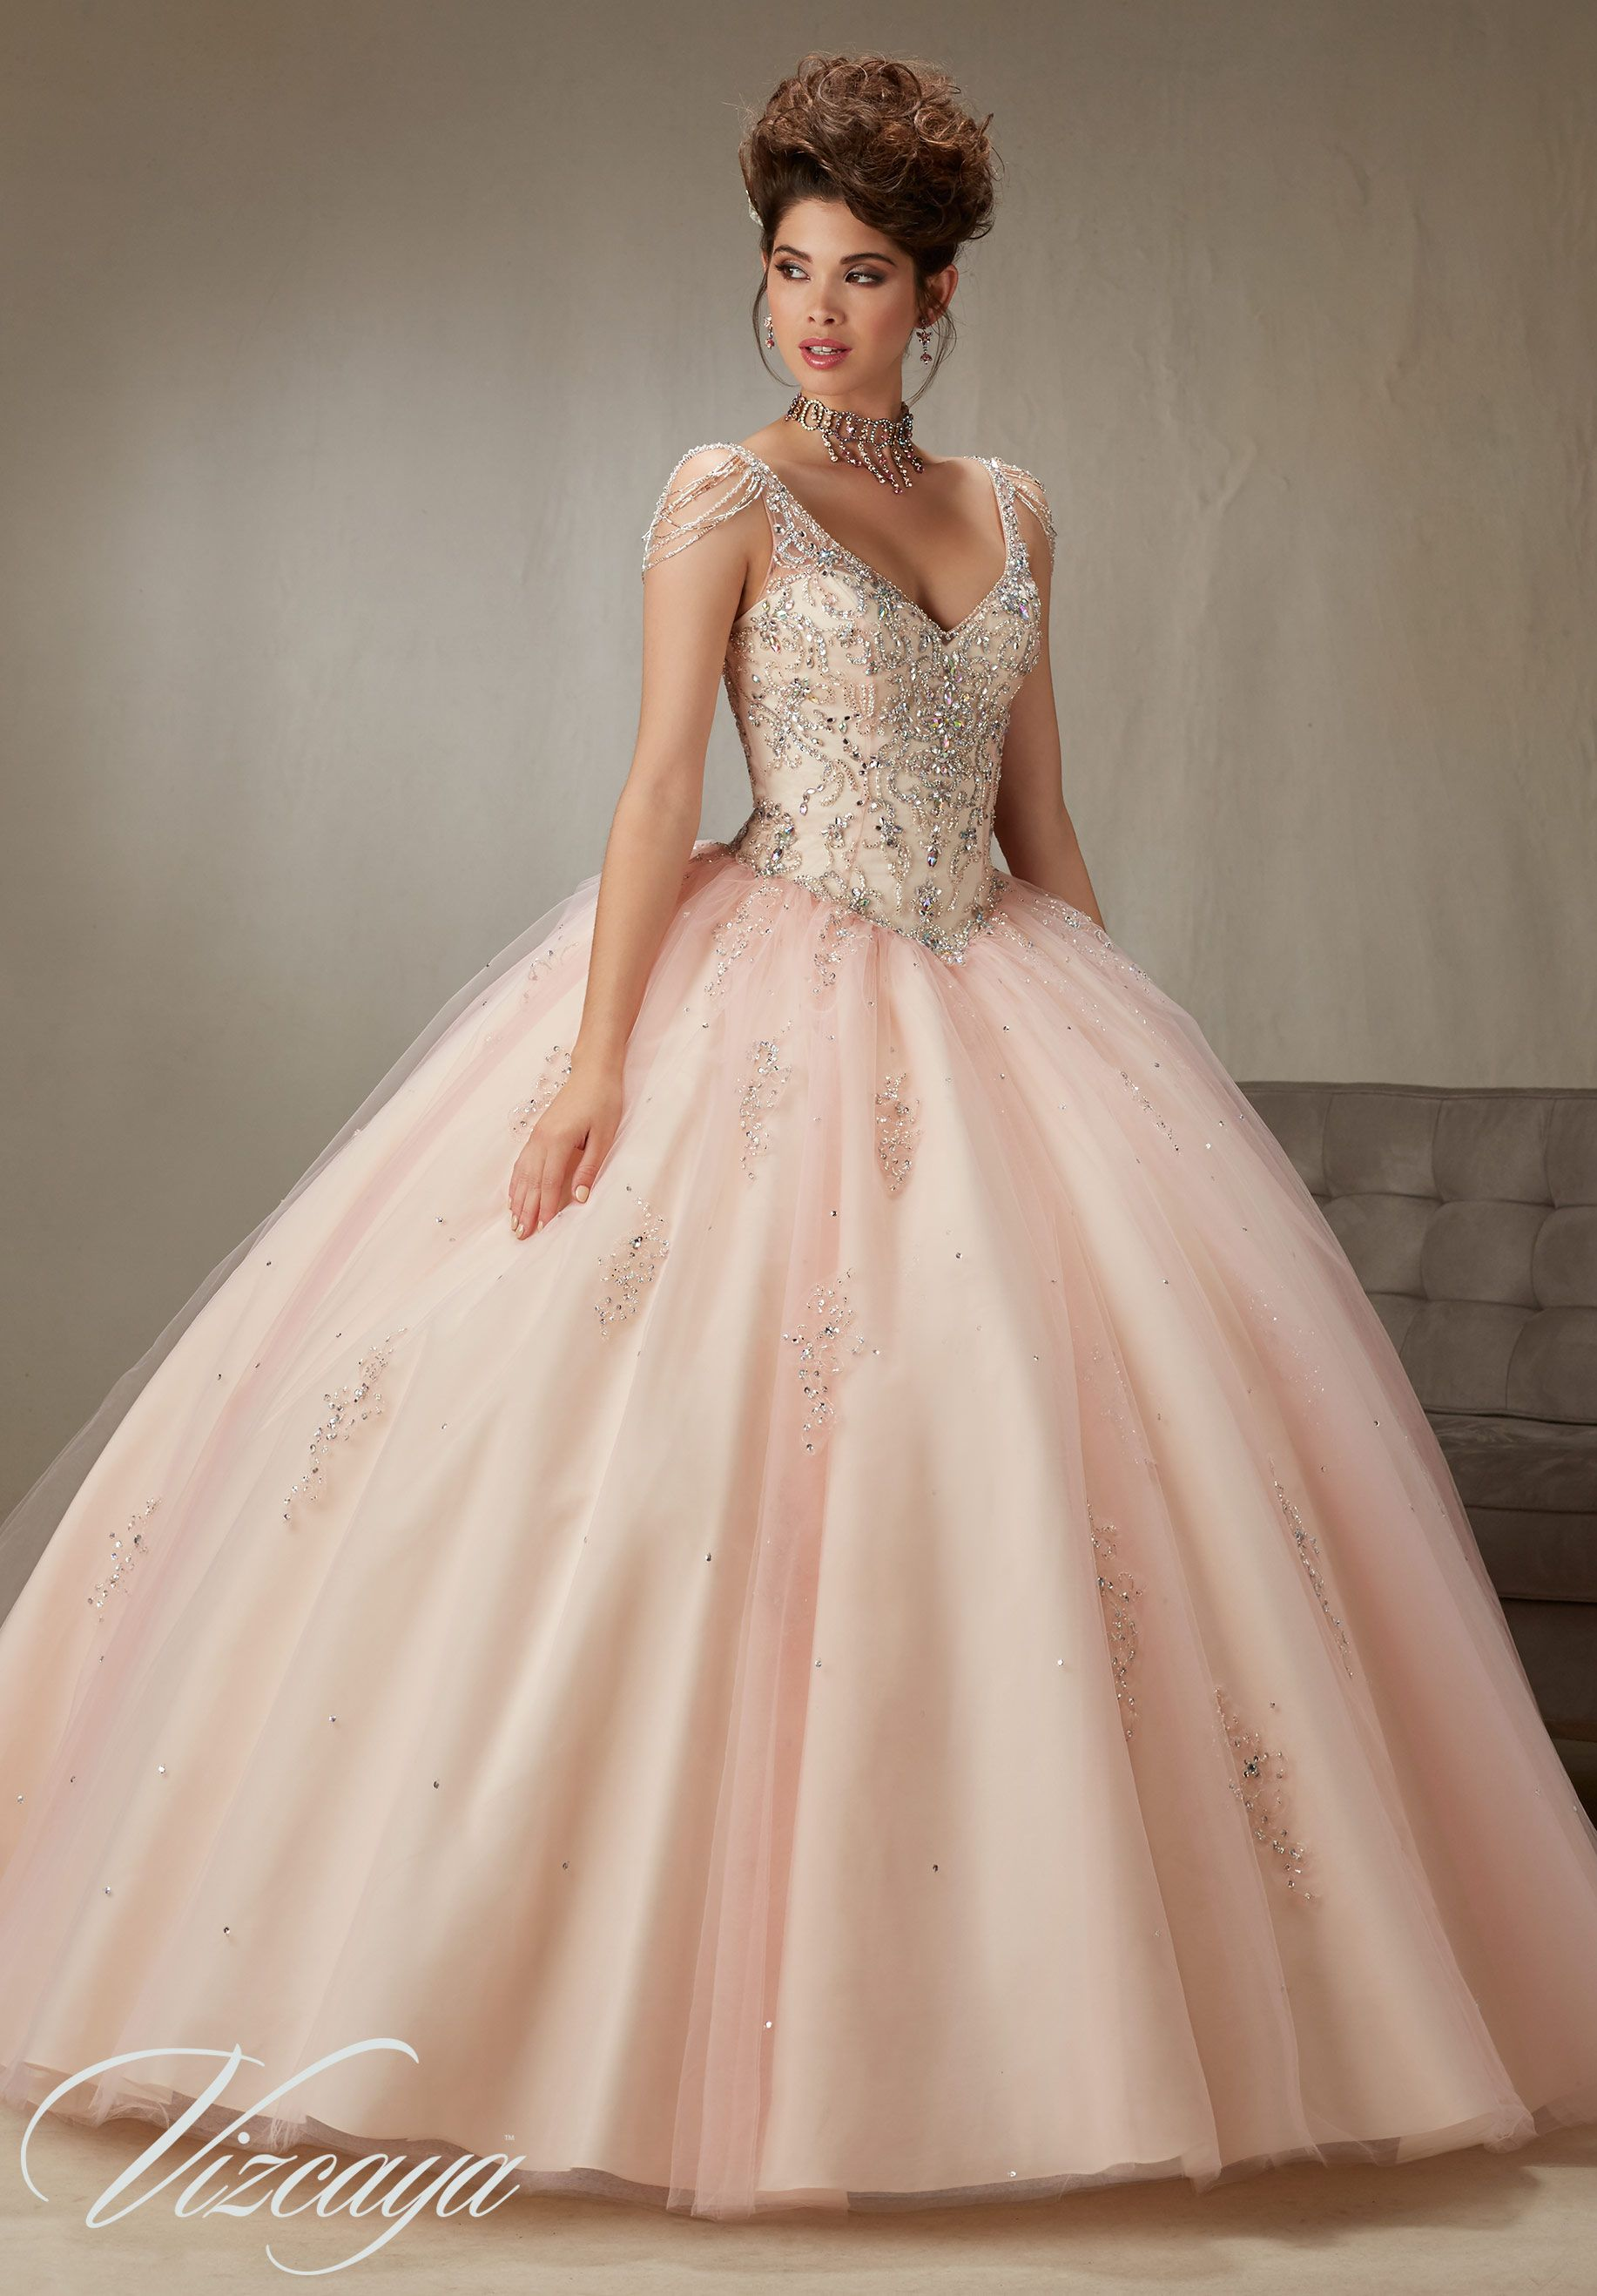 Selfless Elegant Ball Gown Quinceanera Dresses Long O Neck Appliques Beaded Satin Quinceanera Dresses 16 Years Robe De Quinceanera Quinceanera Dresses